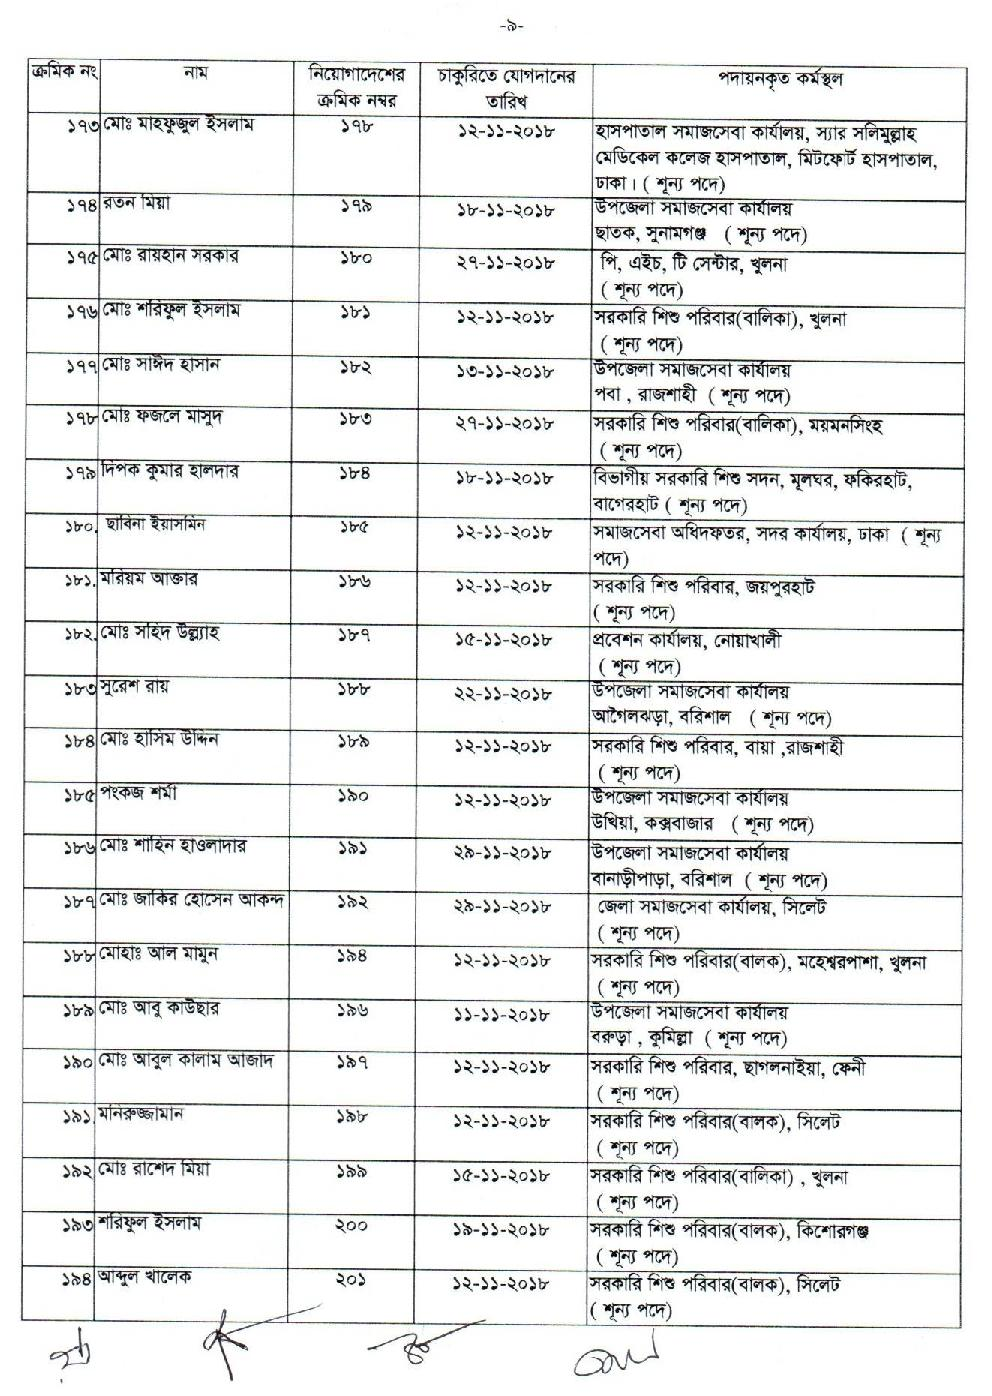 DSS Final Result And Appointment Circular 2018 8